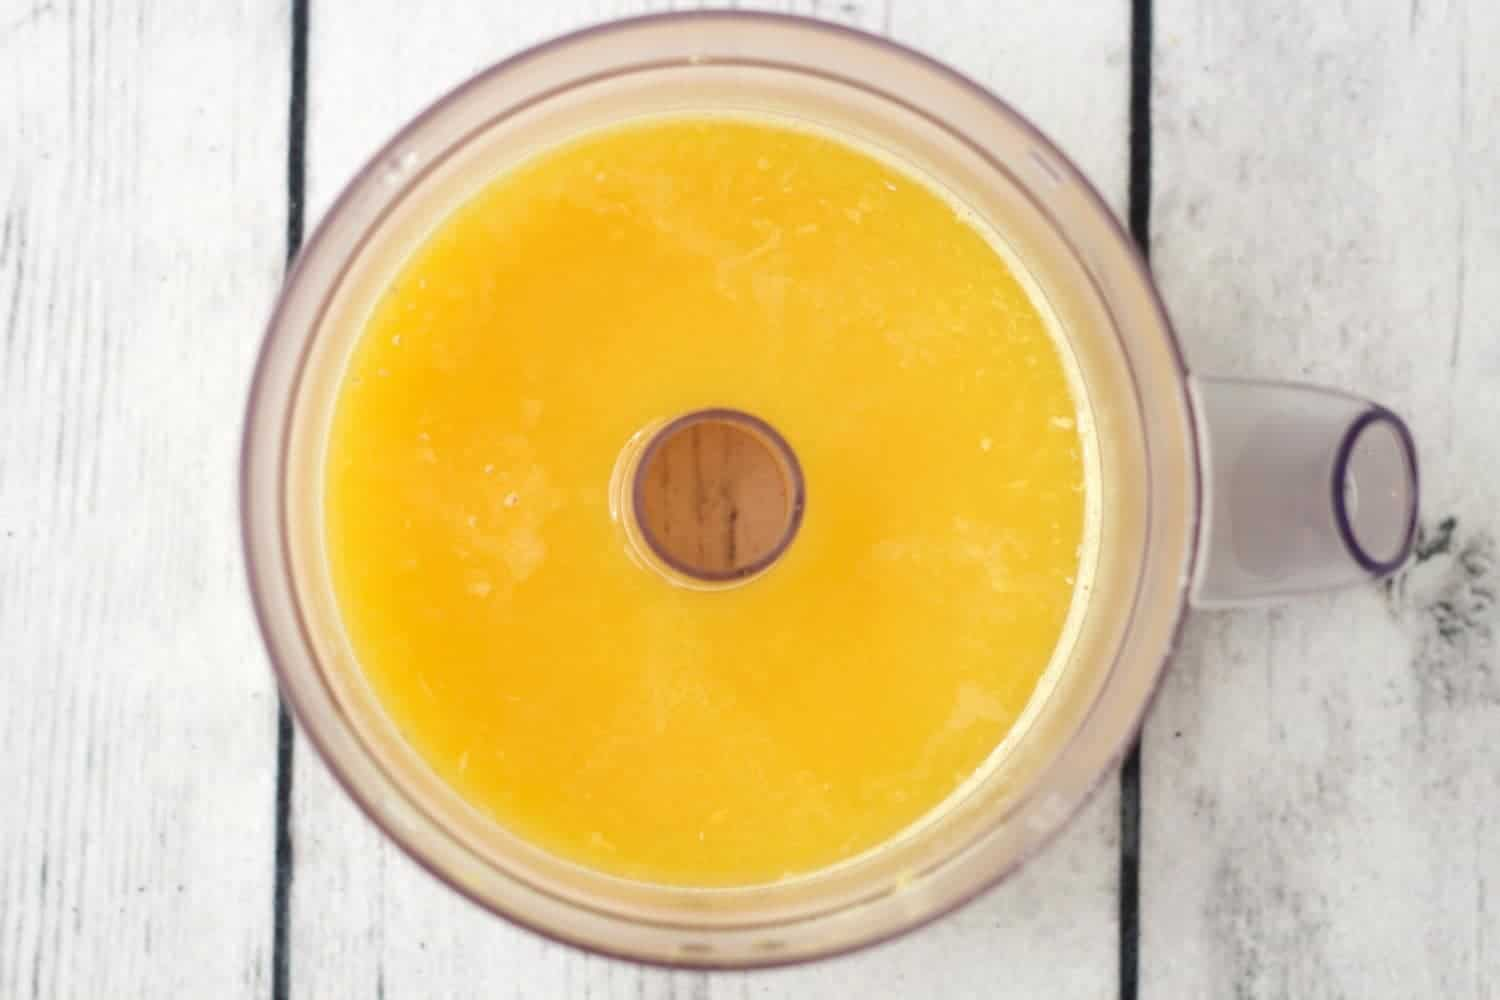 Fresh Squeezed Orange Juice - Ingredient 1 in our Mango Orange Crush Smoothie!